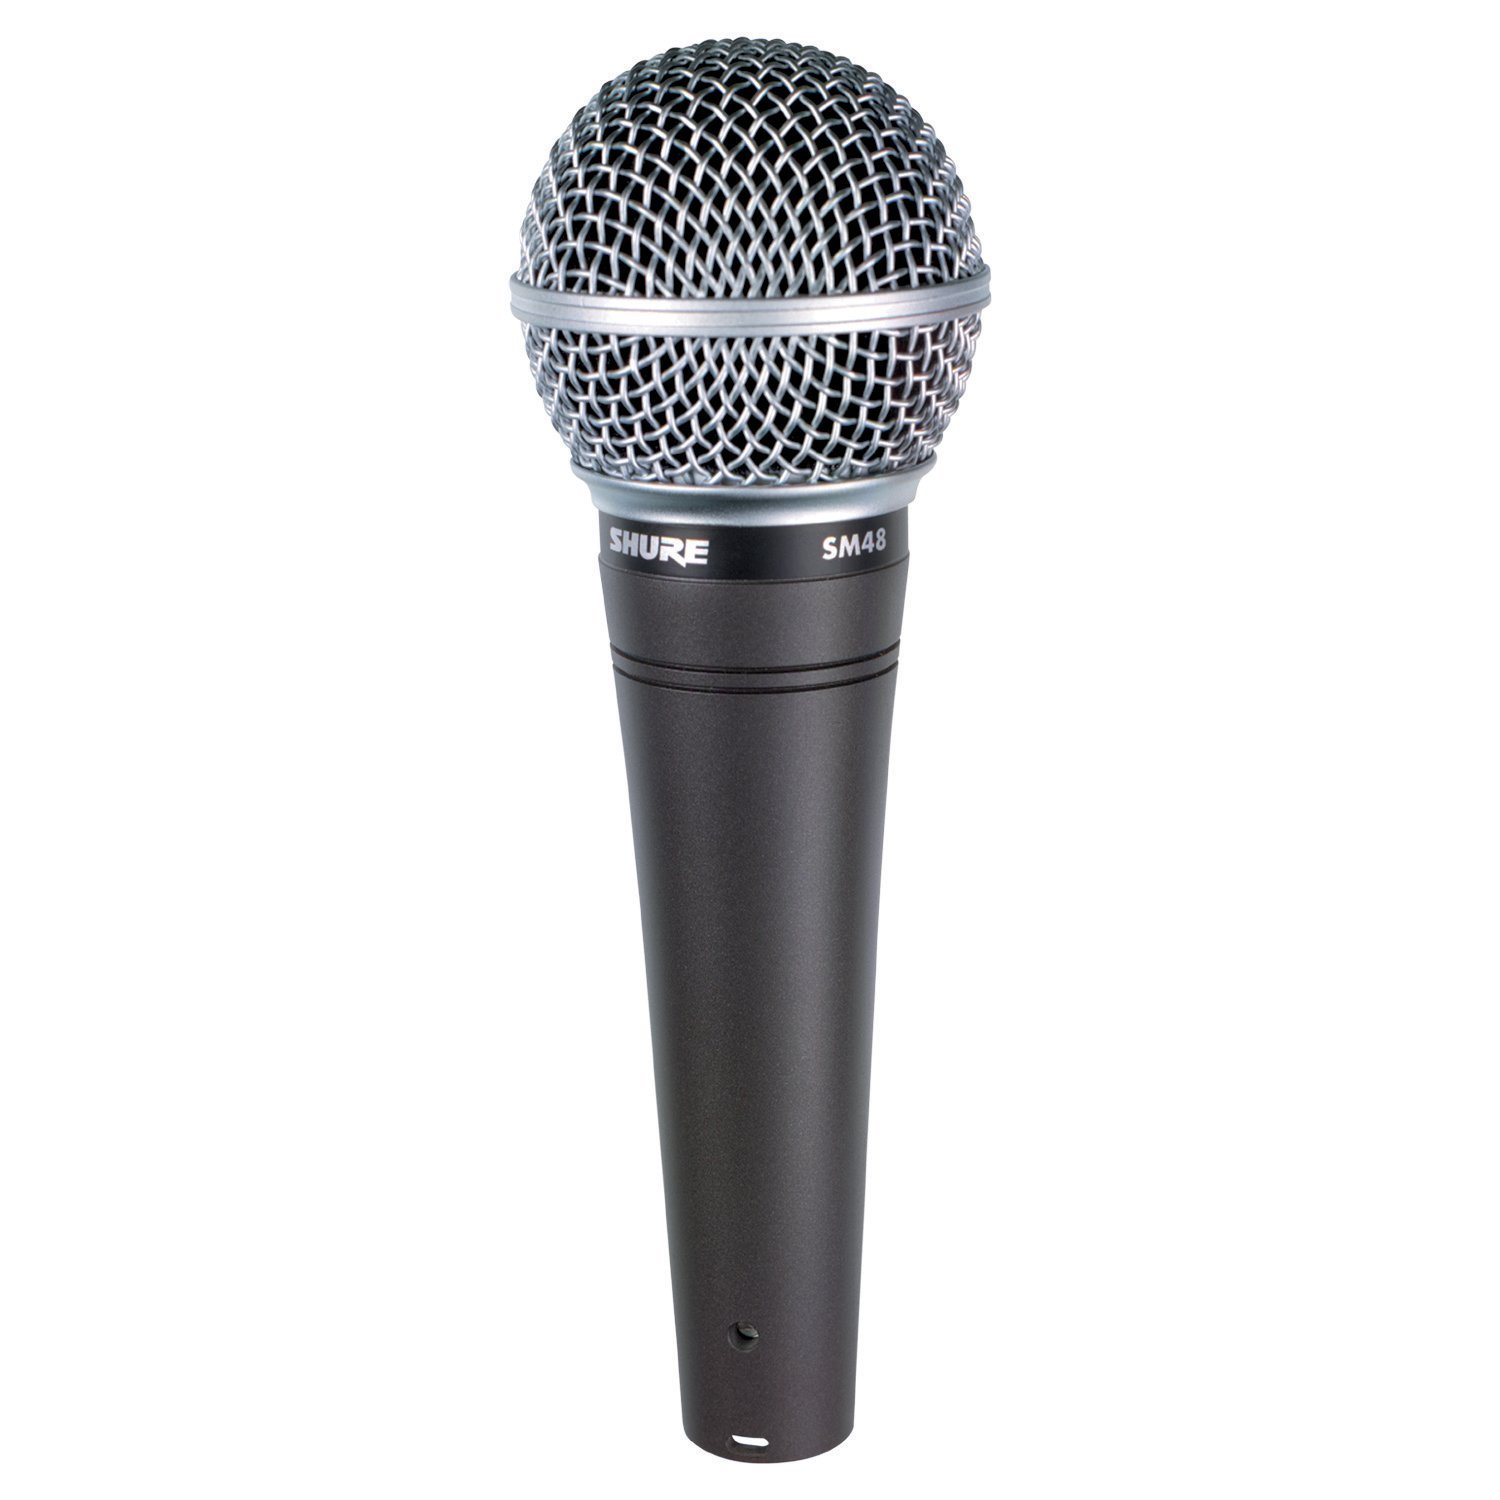 shure pga 48 dynamic vocal microphone w 15 xlr cable. Black Bedroom Furniture Sets. Home Design Ideas